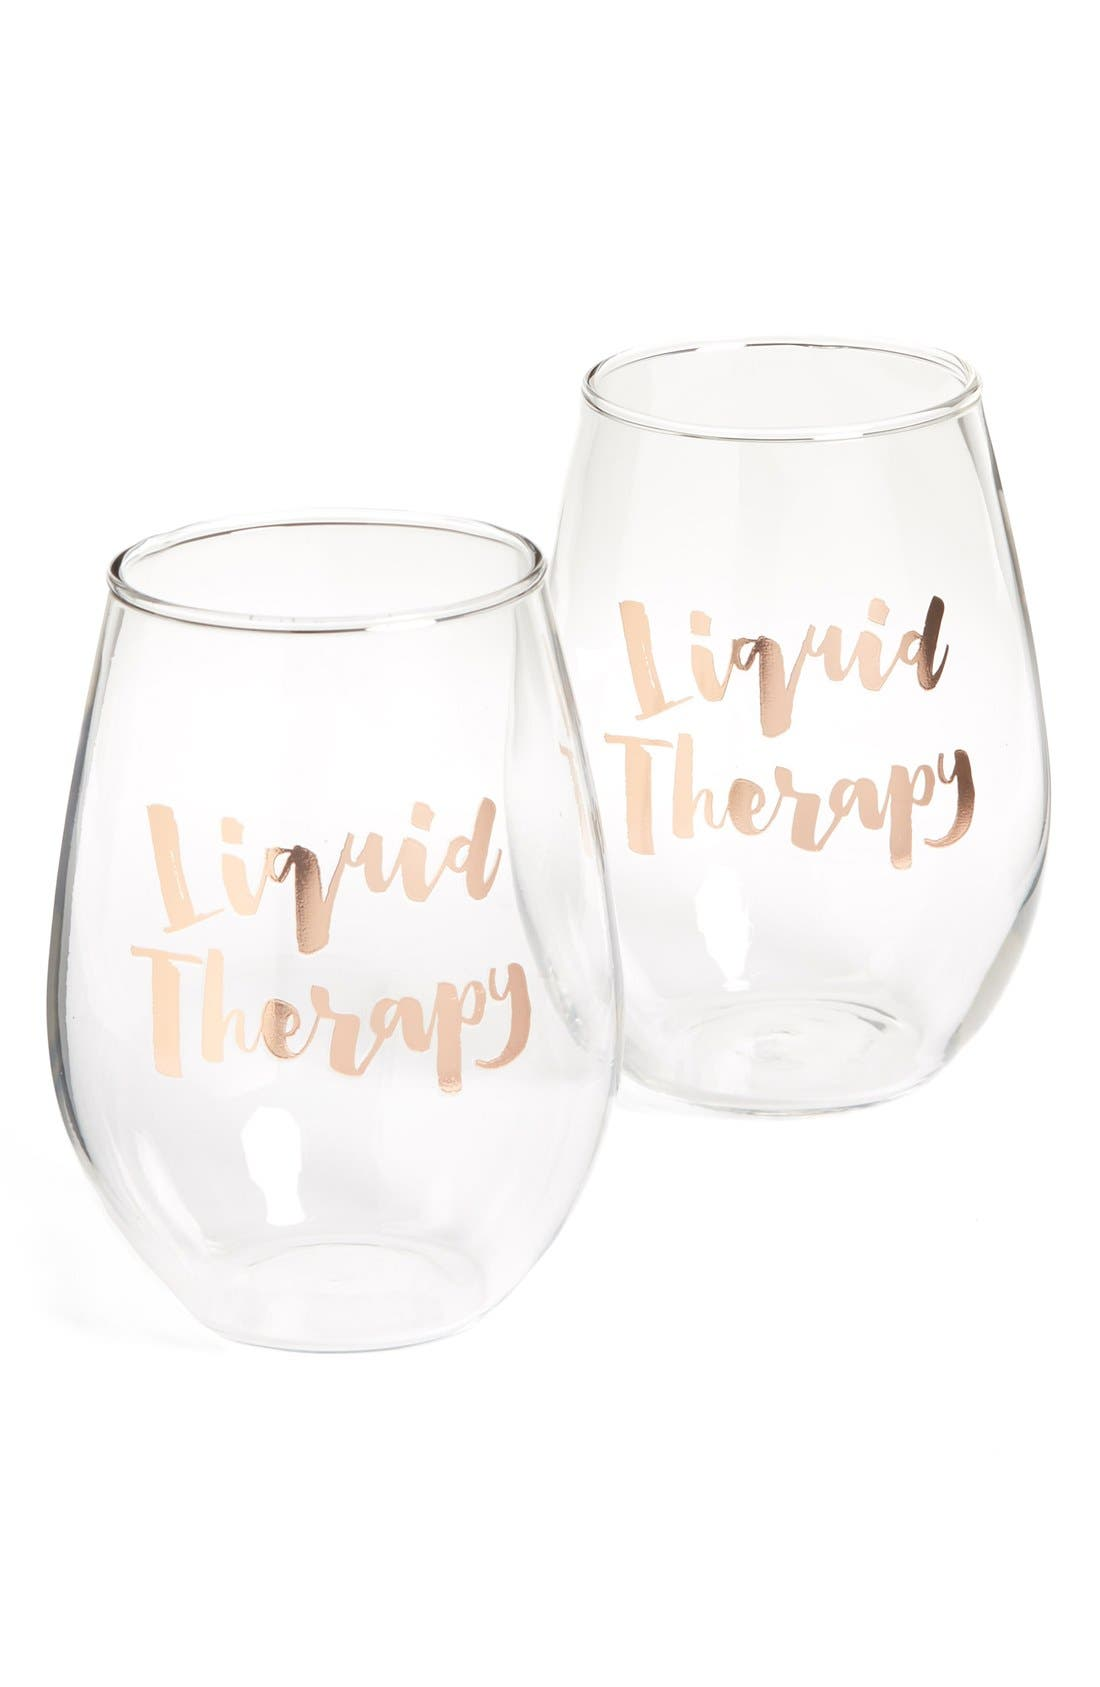 Main Image - Slant Collections Liquid Therapy Set of 2 Stemless Wine Glasses